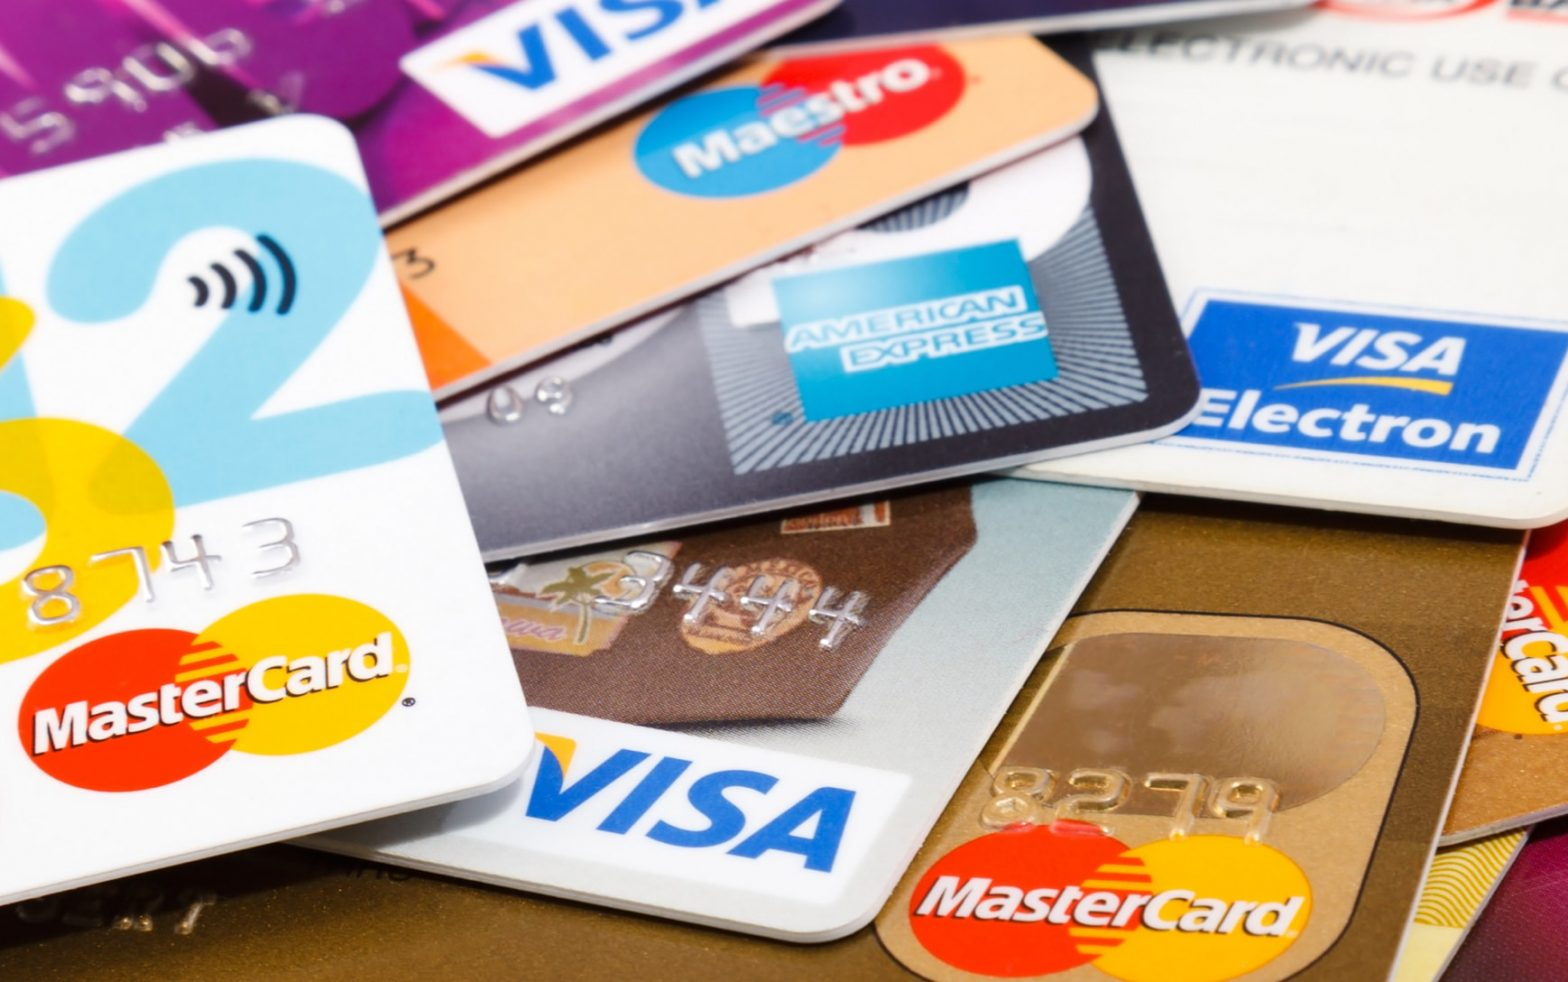 Credit Cards Preparing towards a Cashless Society